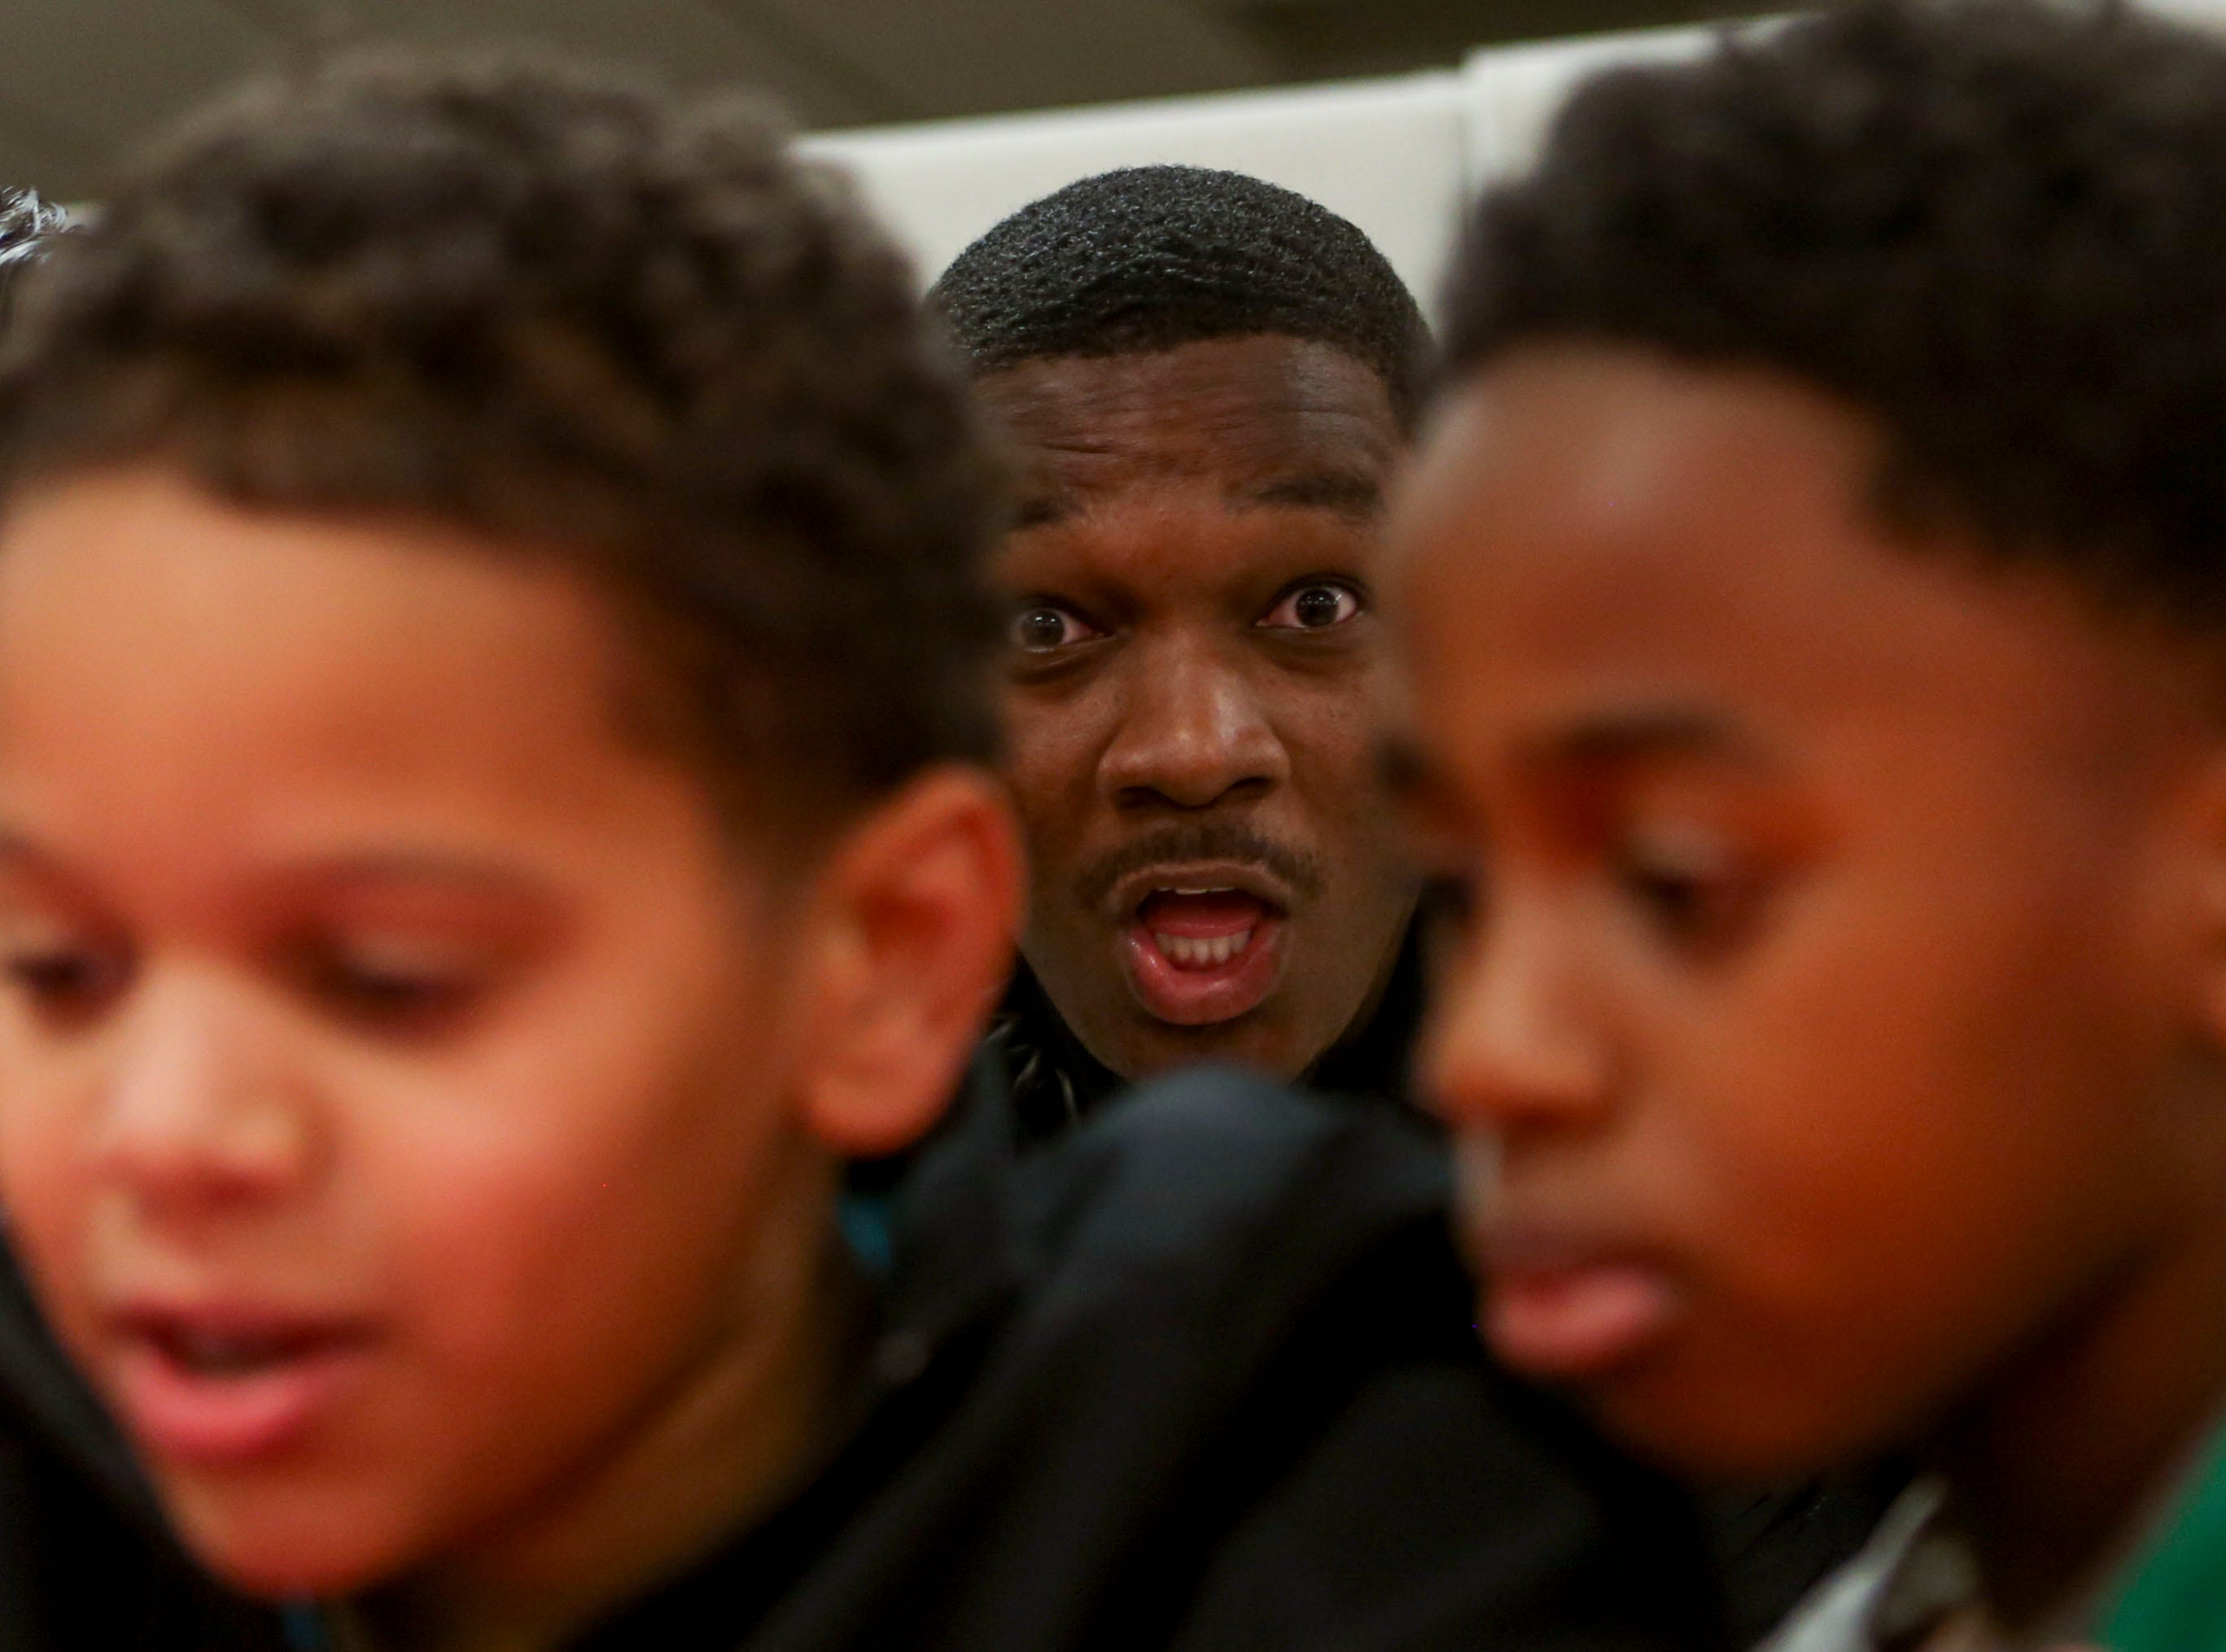 Dominique Moore, a patrol officer with Milan, photo bombs between Jayden Williams, 9, and Jeremiah Conley, 8, during the matching time for Shop with a Cop at Hawkins-Whitby Fema Community Safe Room in Milan, Tenn., on Thursday, Dec. 13, 2018.